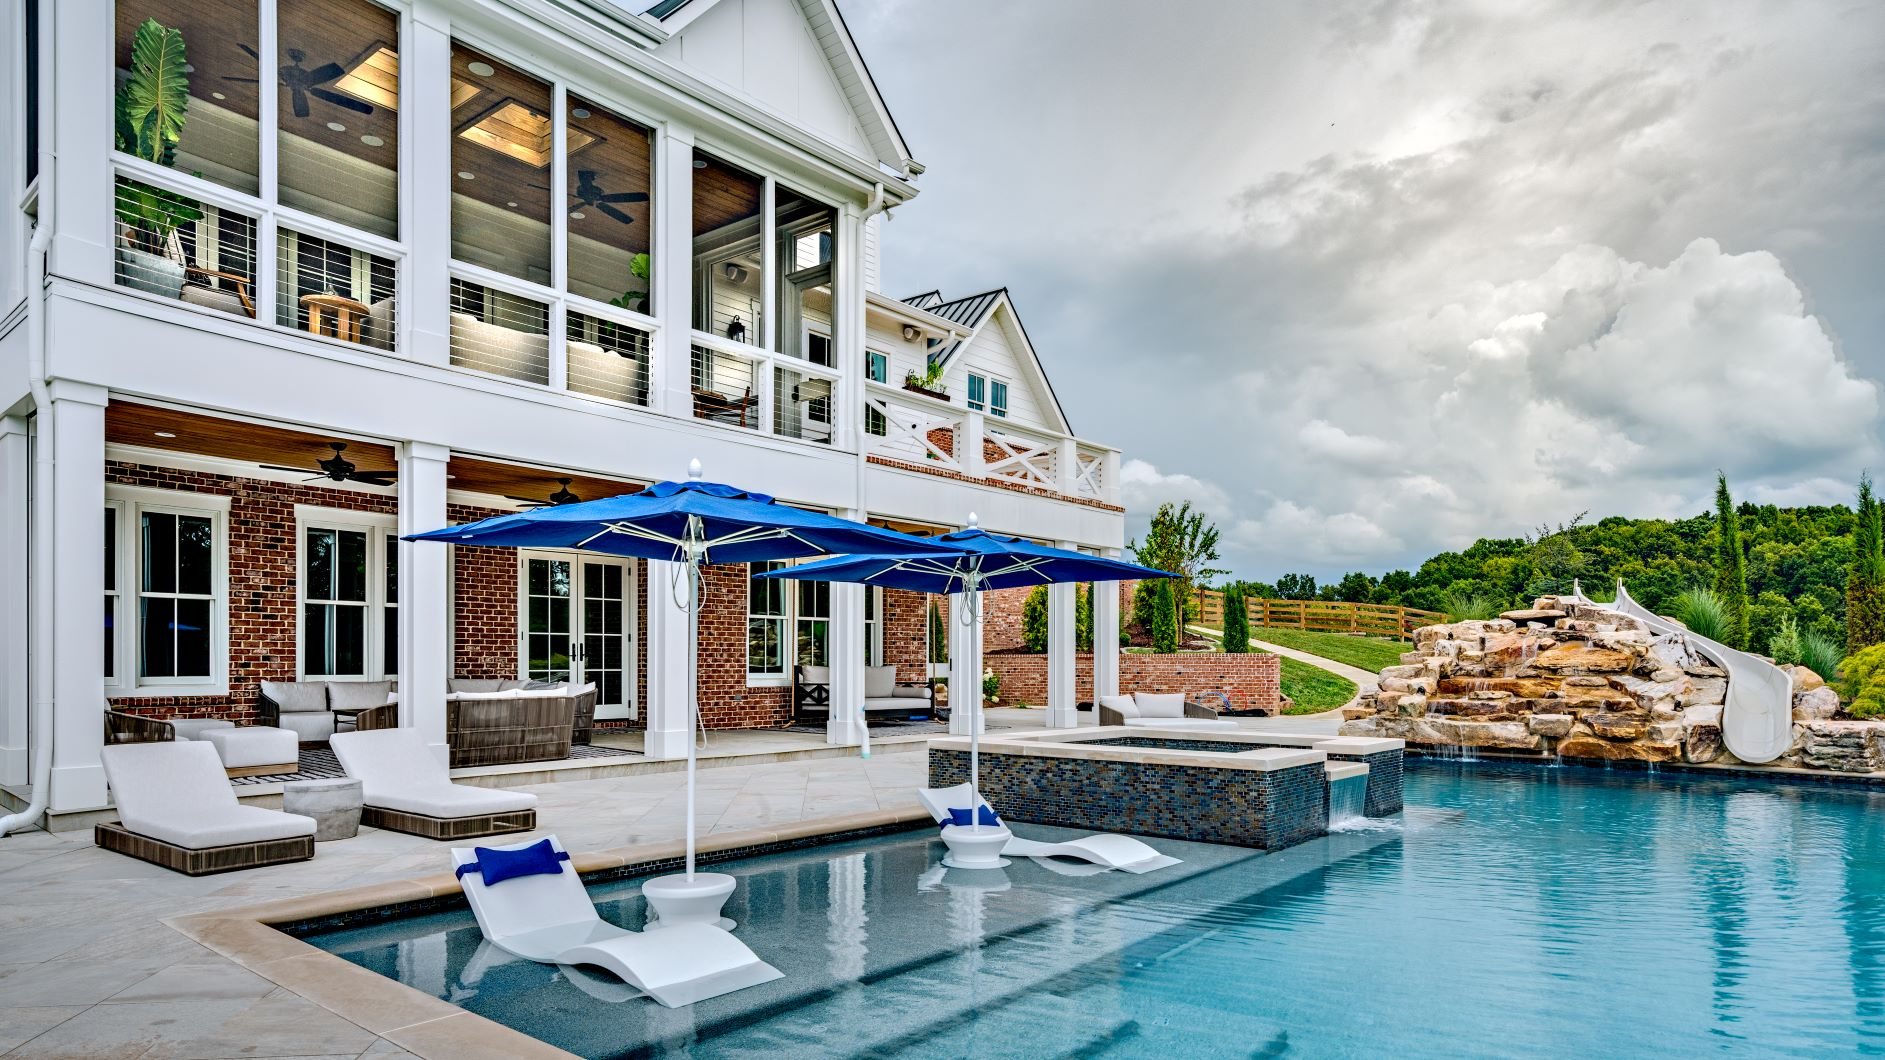 Headley BackofHouse from Pool for web.jpg